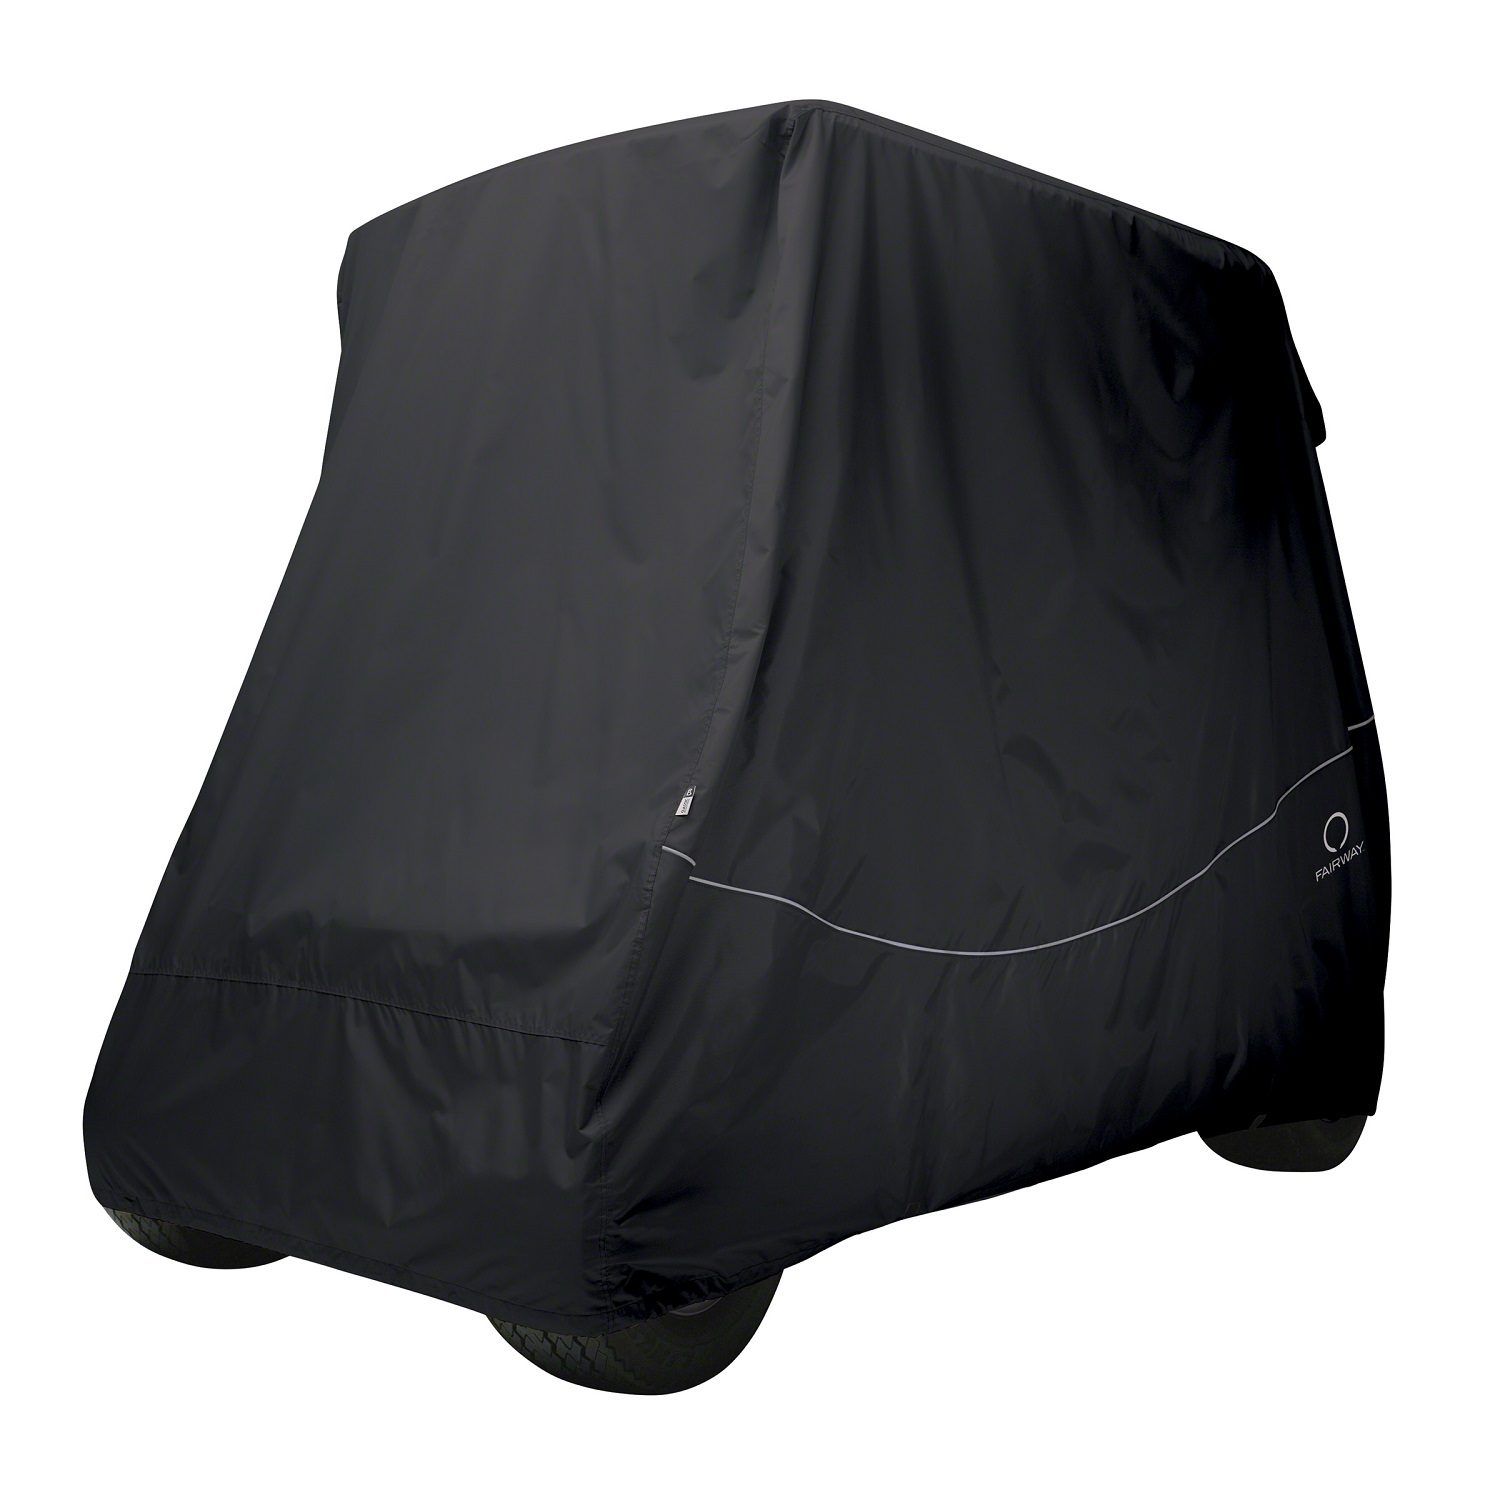 Fairway Golf Cart Quick-Fit Cover Short Roof - Black